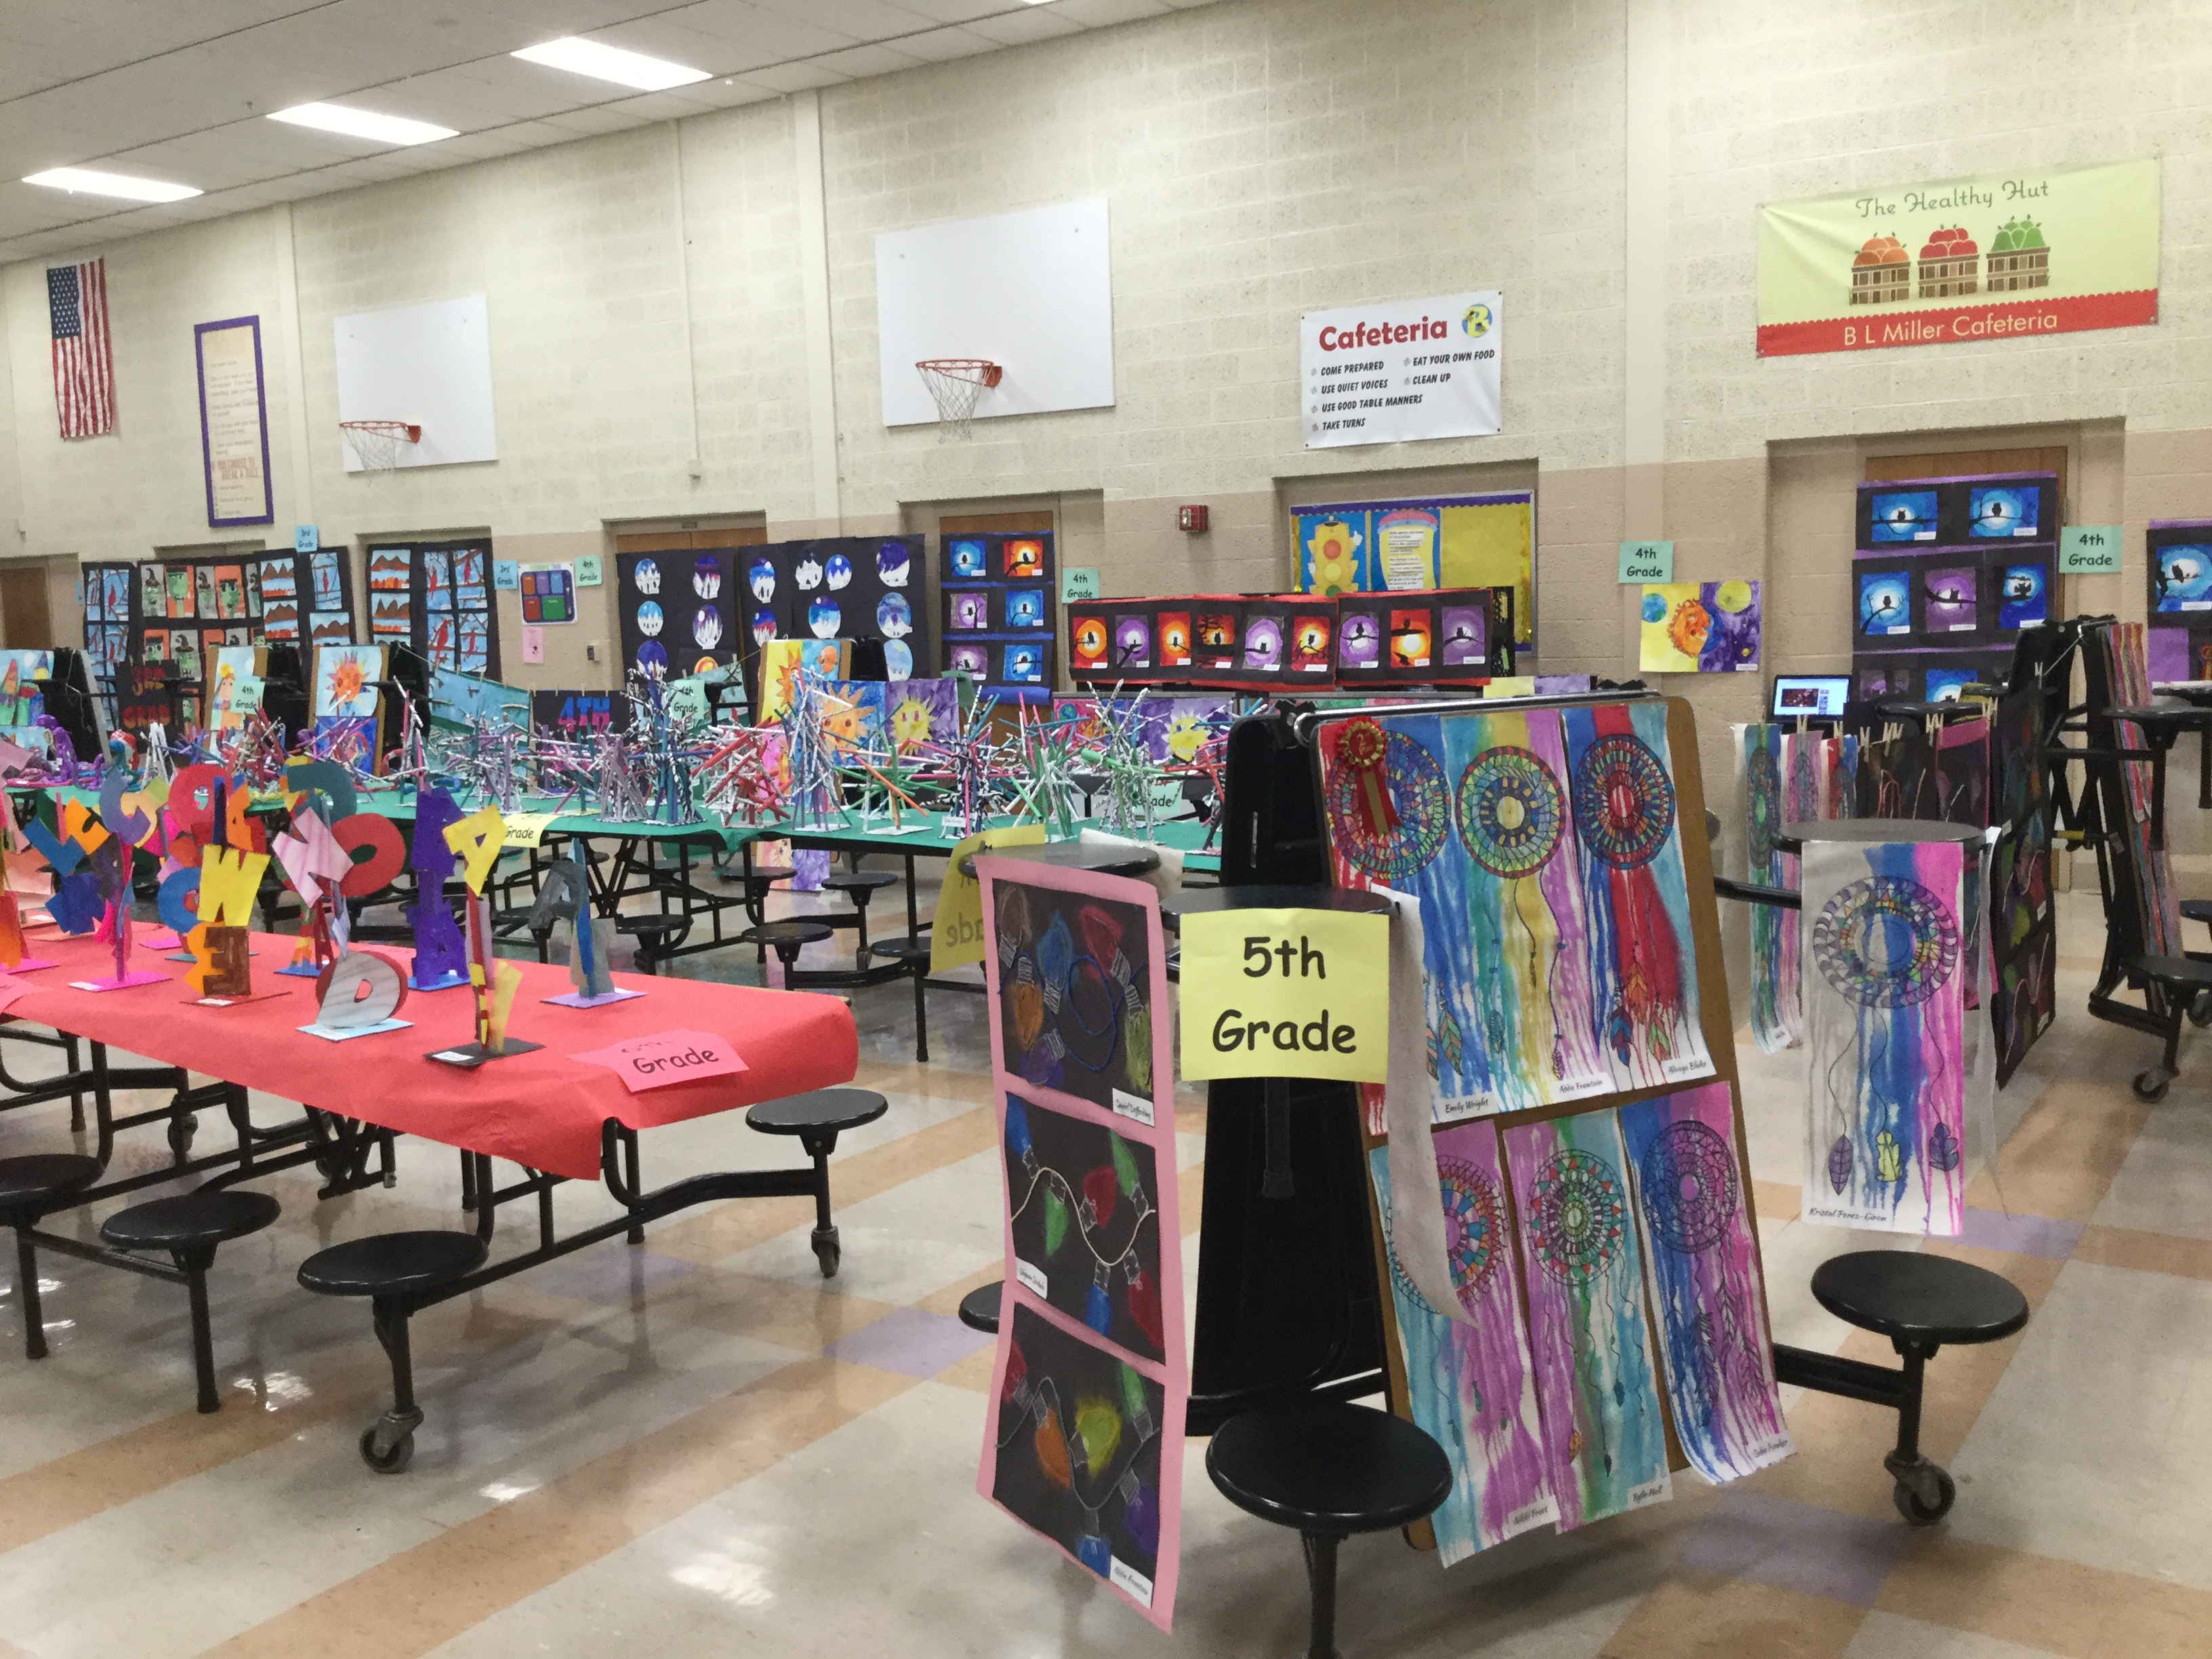 B.L. Miller Elementary School Art Show at parent-teacher conferences on Thursday, February 14, 2019.